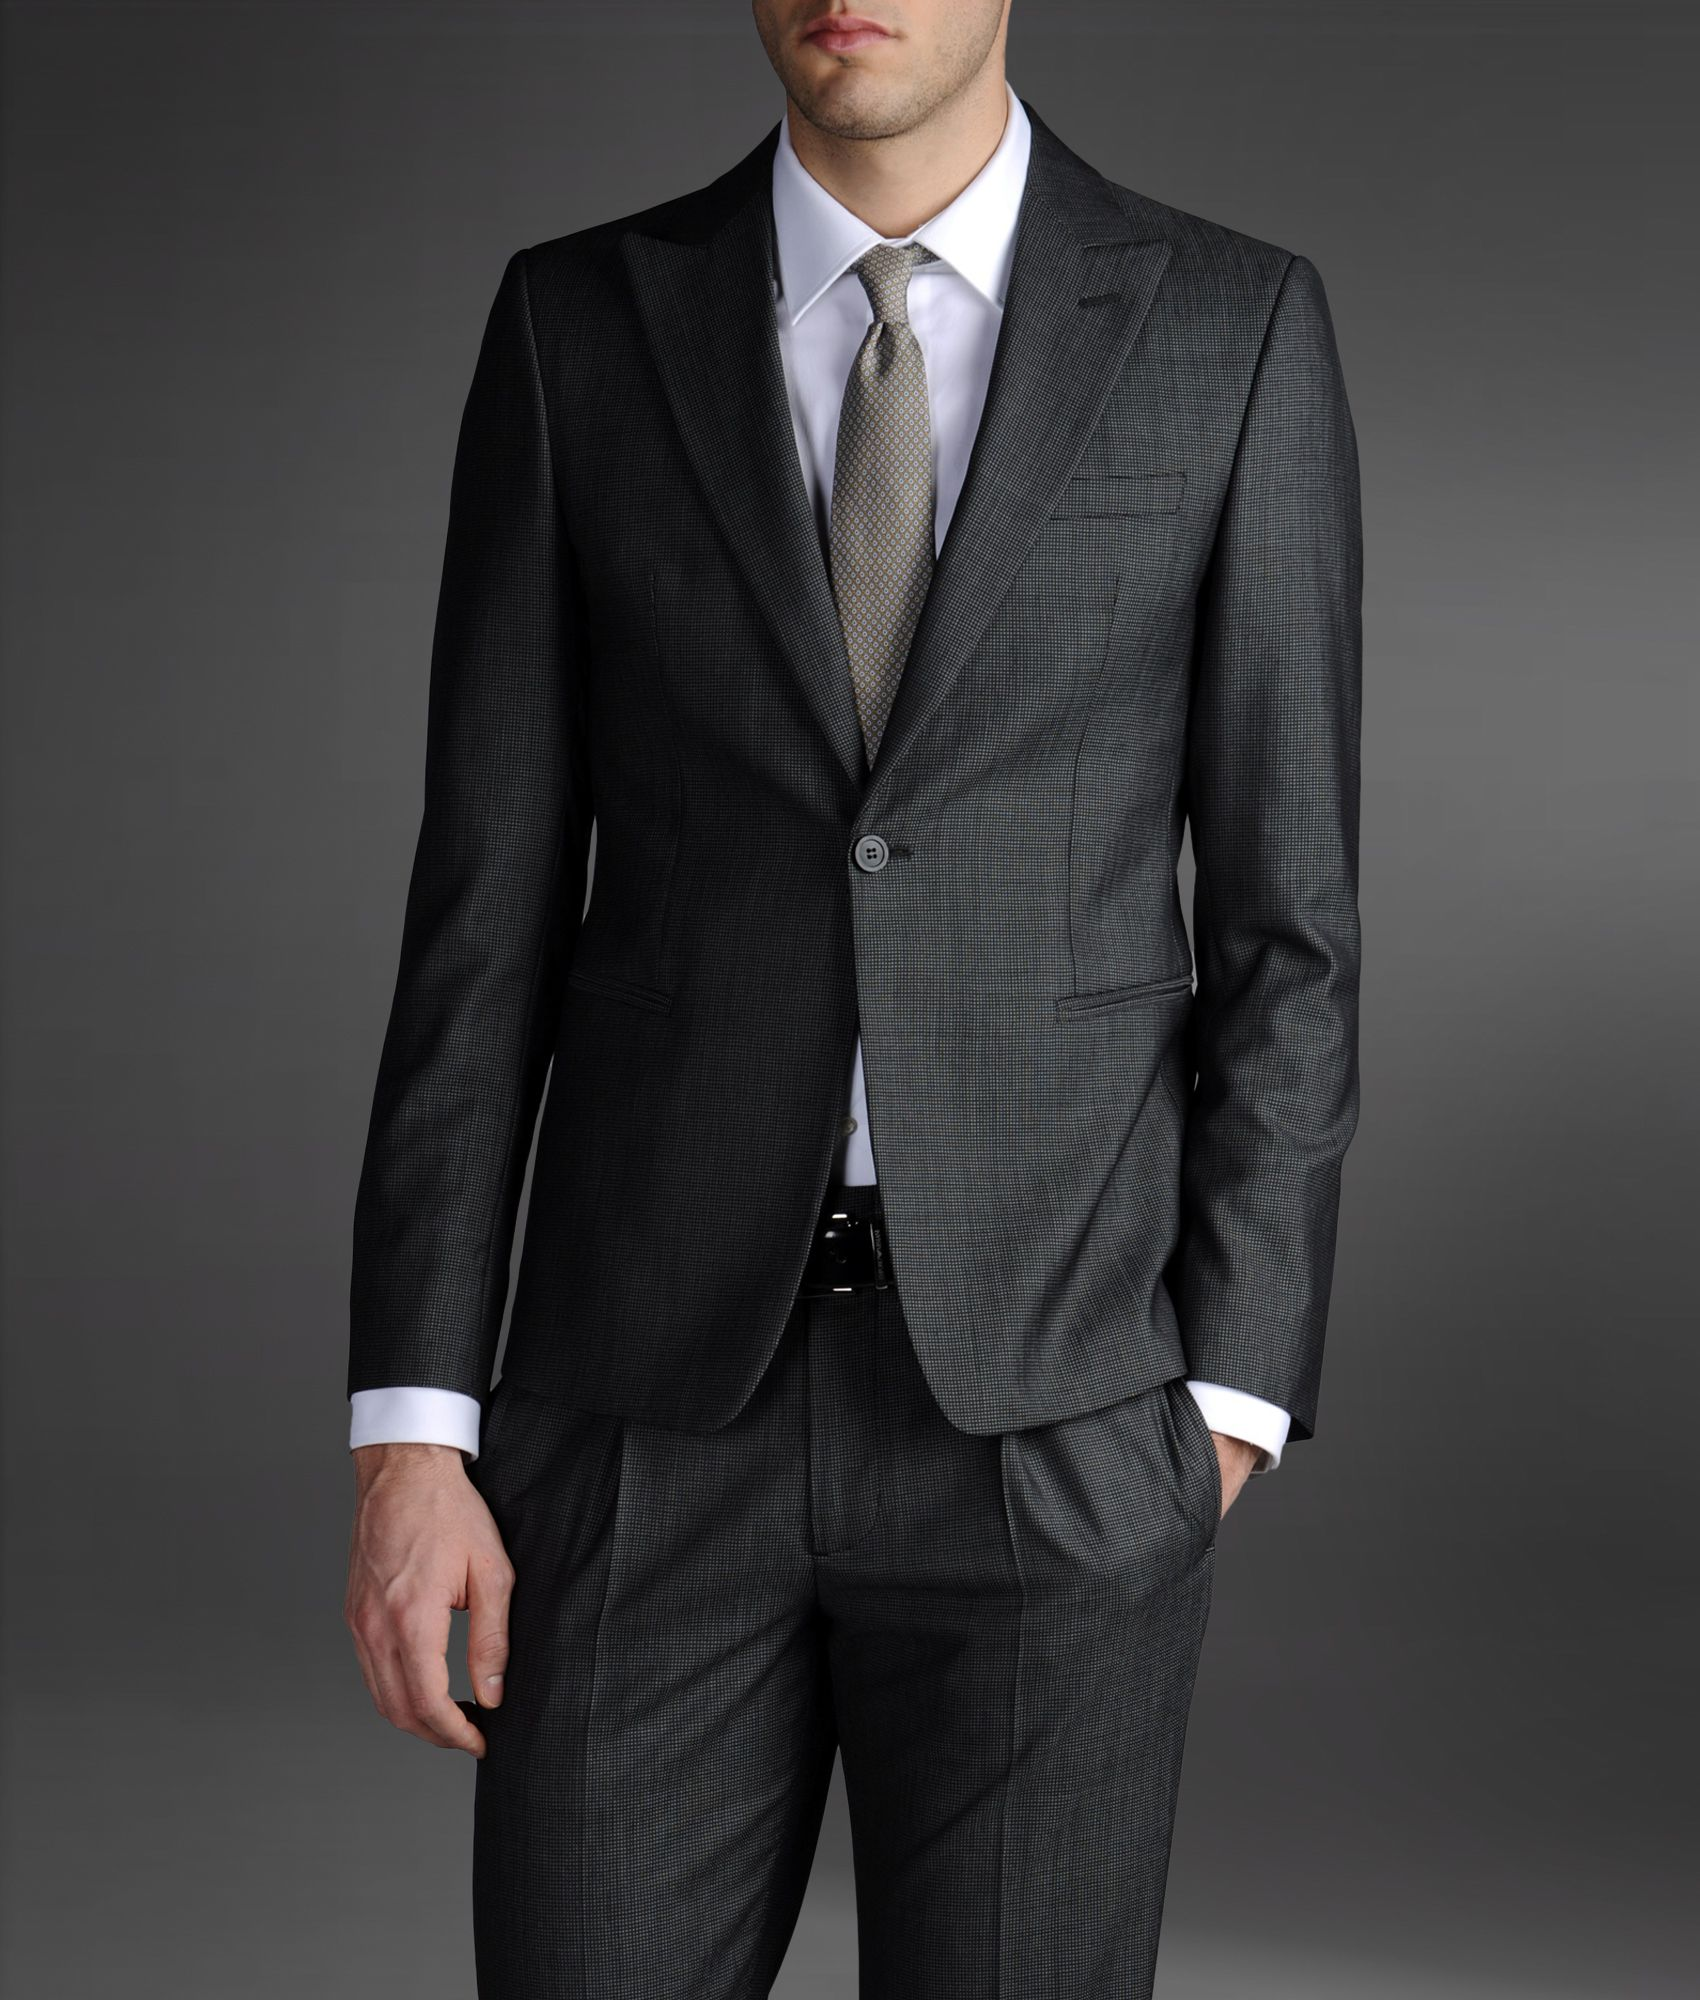 Emporio armani One Button Suit in Gray for Men | Lyst